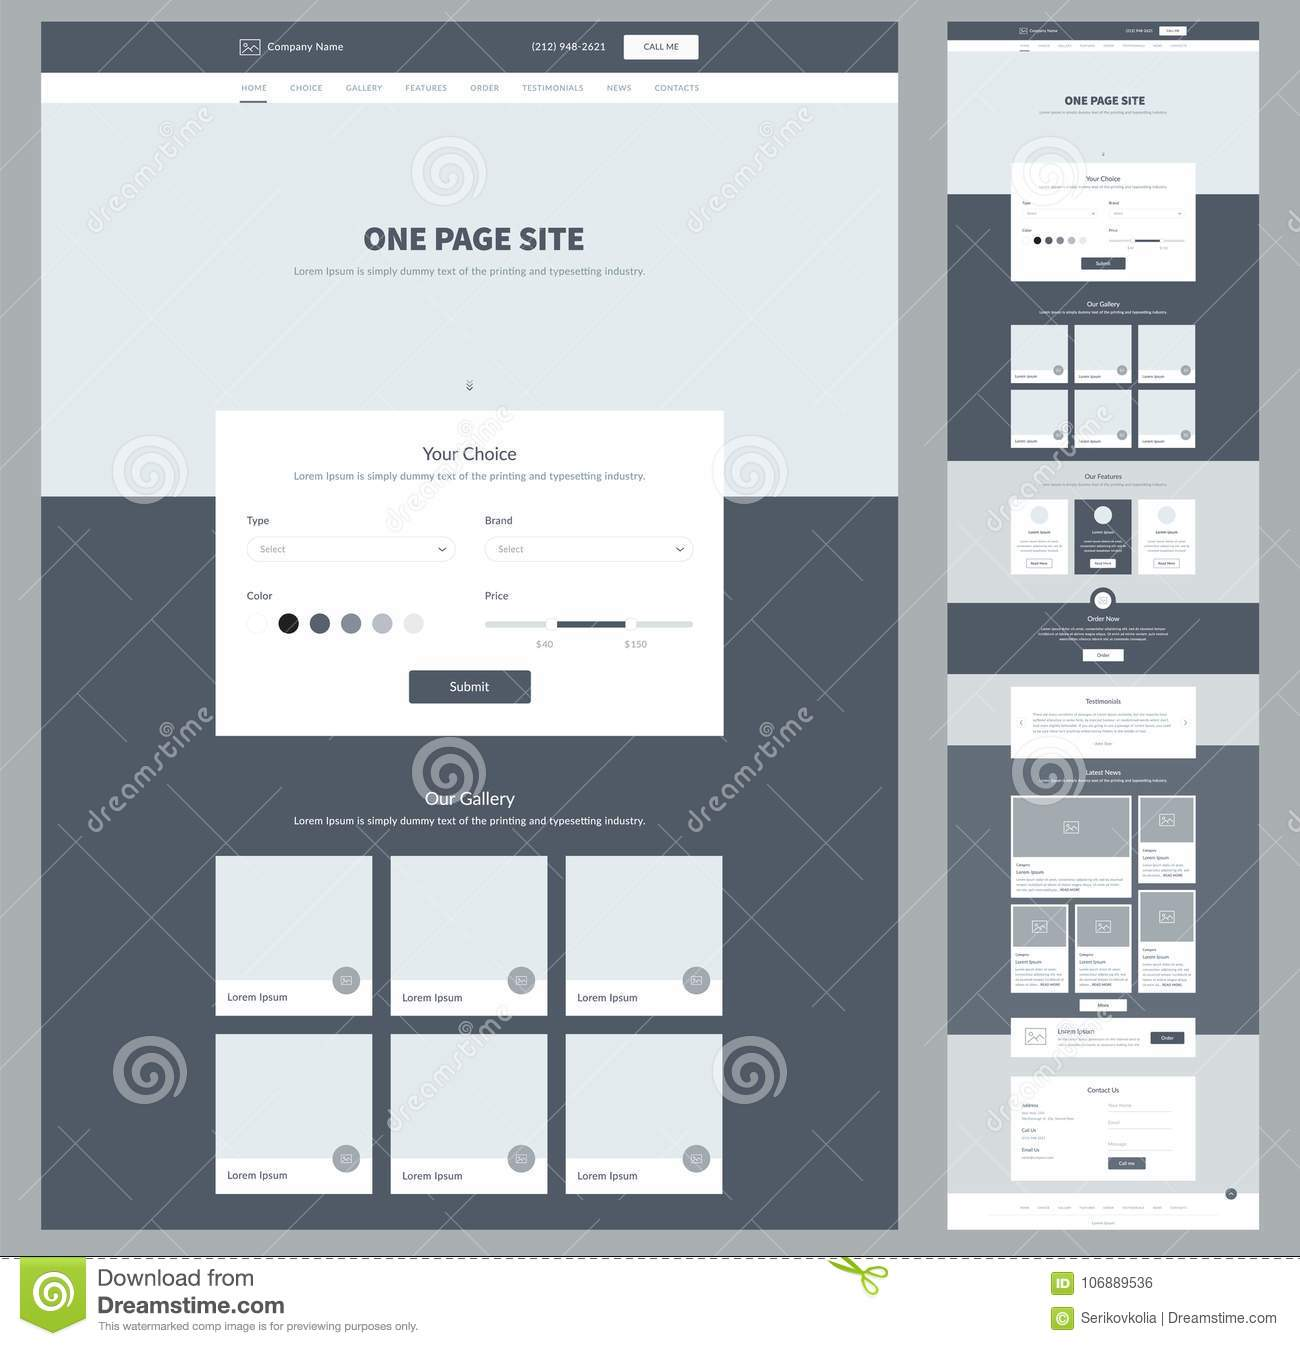 Responsive Web Design In Modern Flat Vector Style Concept: One Page Website Design Template For Your Business